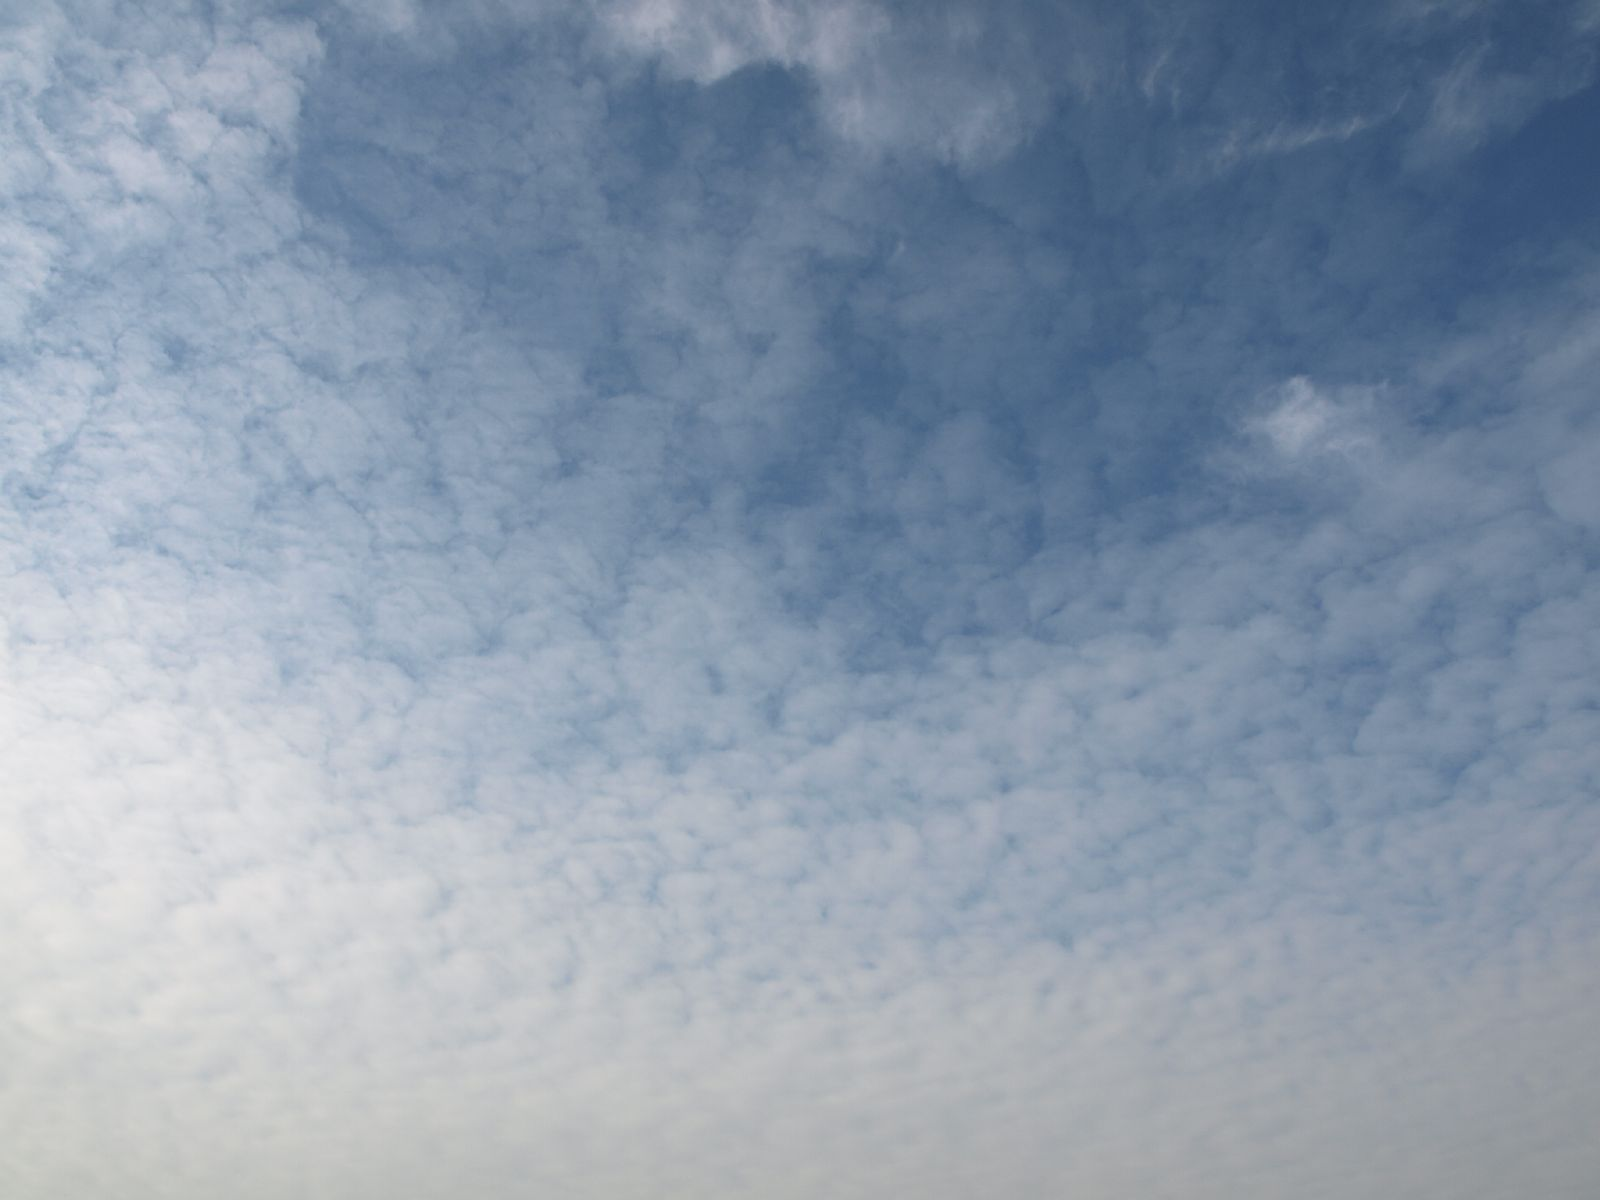 Sky_Clouds_Photo_Texture_A_P9195037